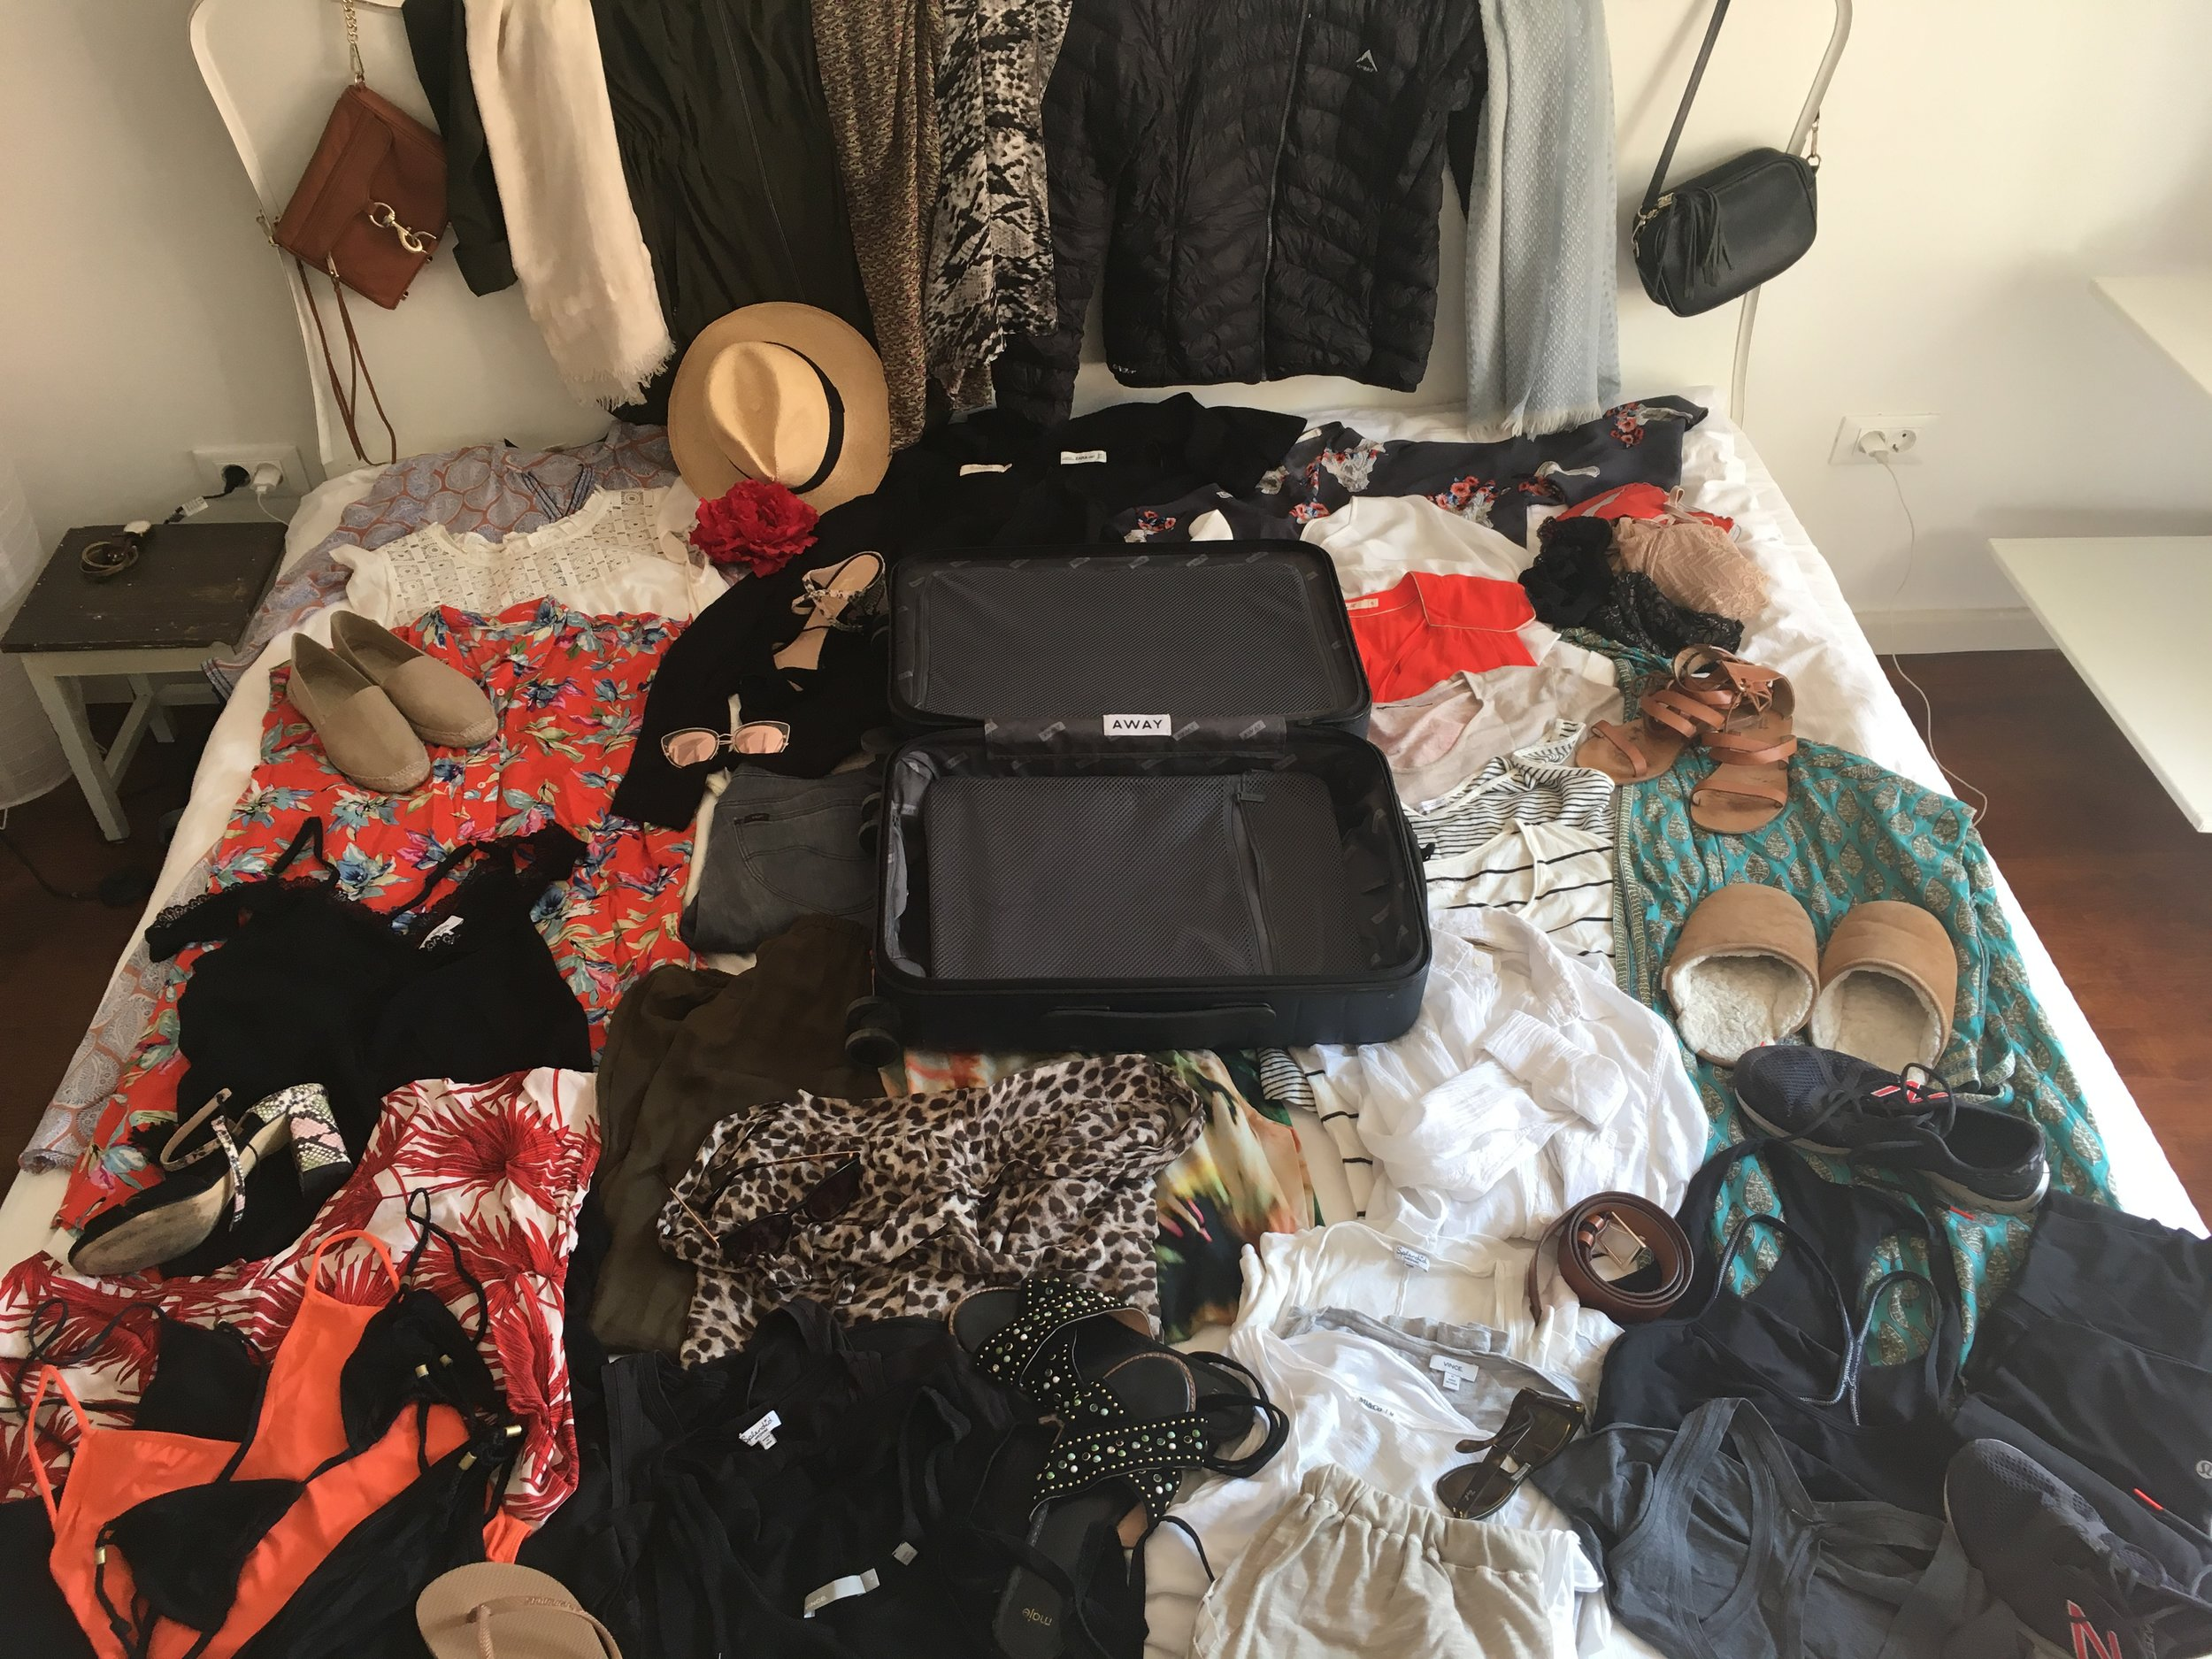 Can you believe all of this fits into a carry on?  Clothes on one side and shoes/accessories on the other.  Some things have been given away or sent home since I took this picture...and replaced with new treasures from our new destinations.